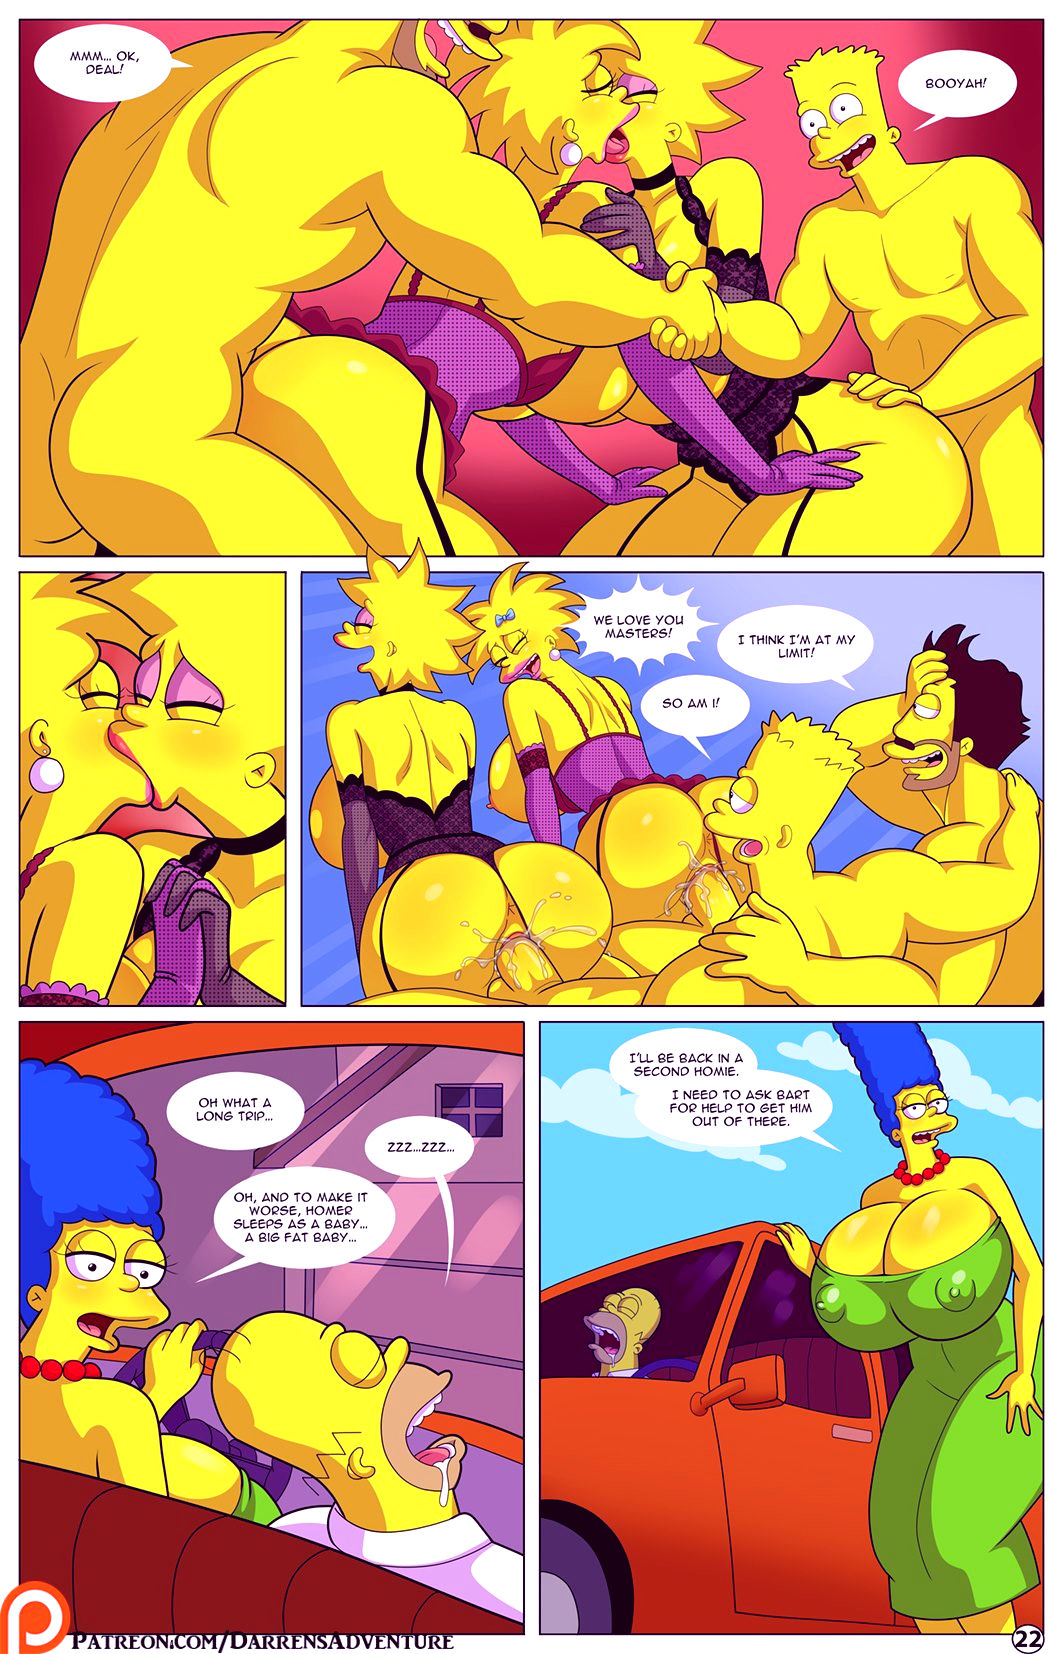 Darrens adventure or welcome to springfield porn comic picture 94